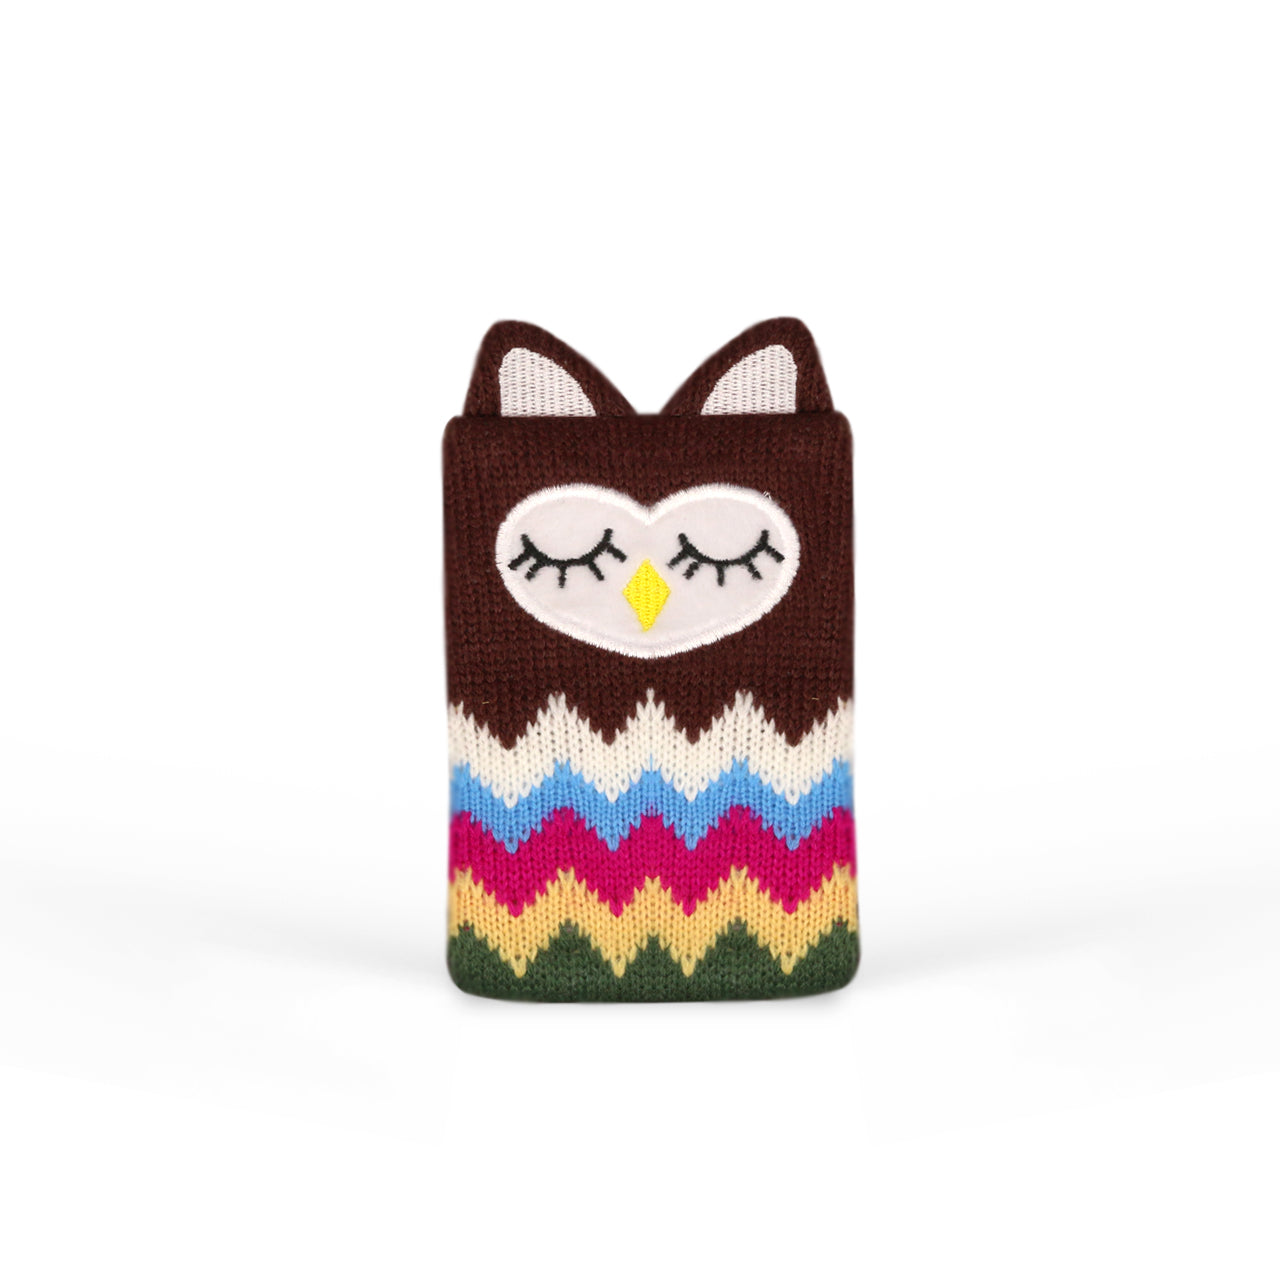 Heat Up Hand Warmer - Owl - The Grain Shop Online Store